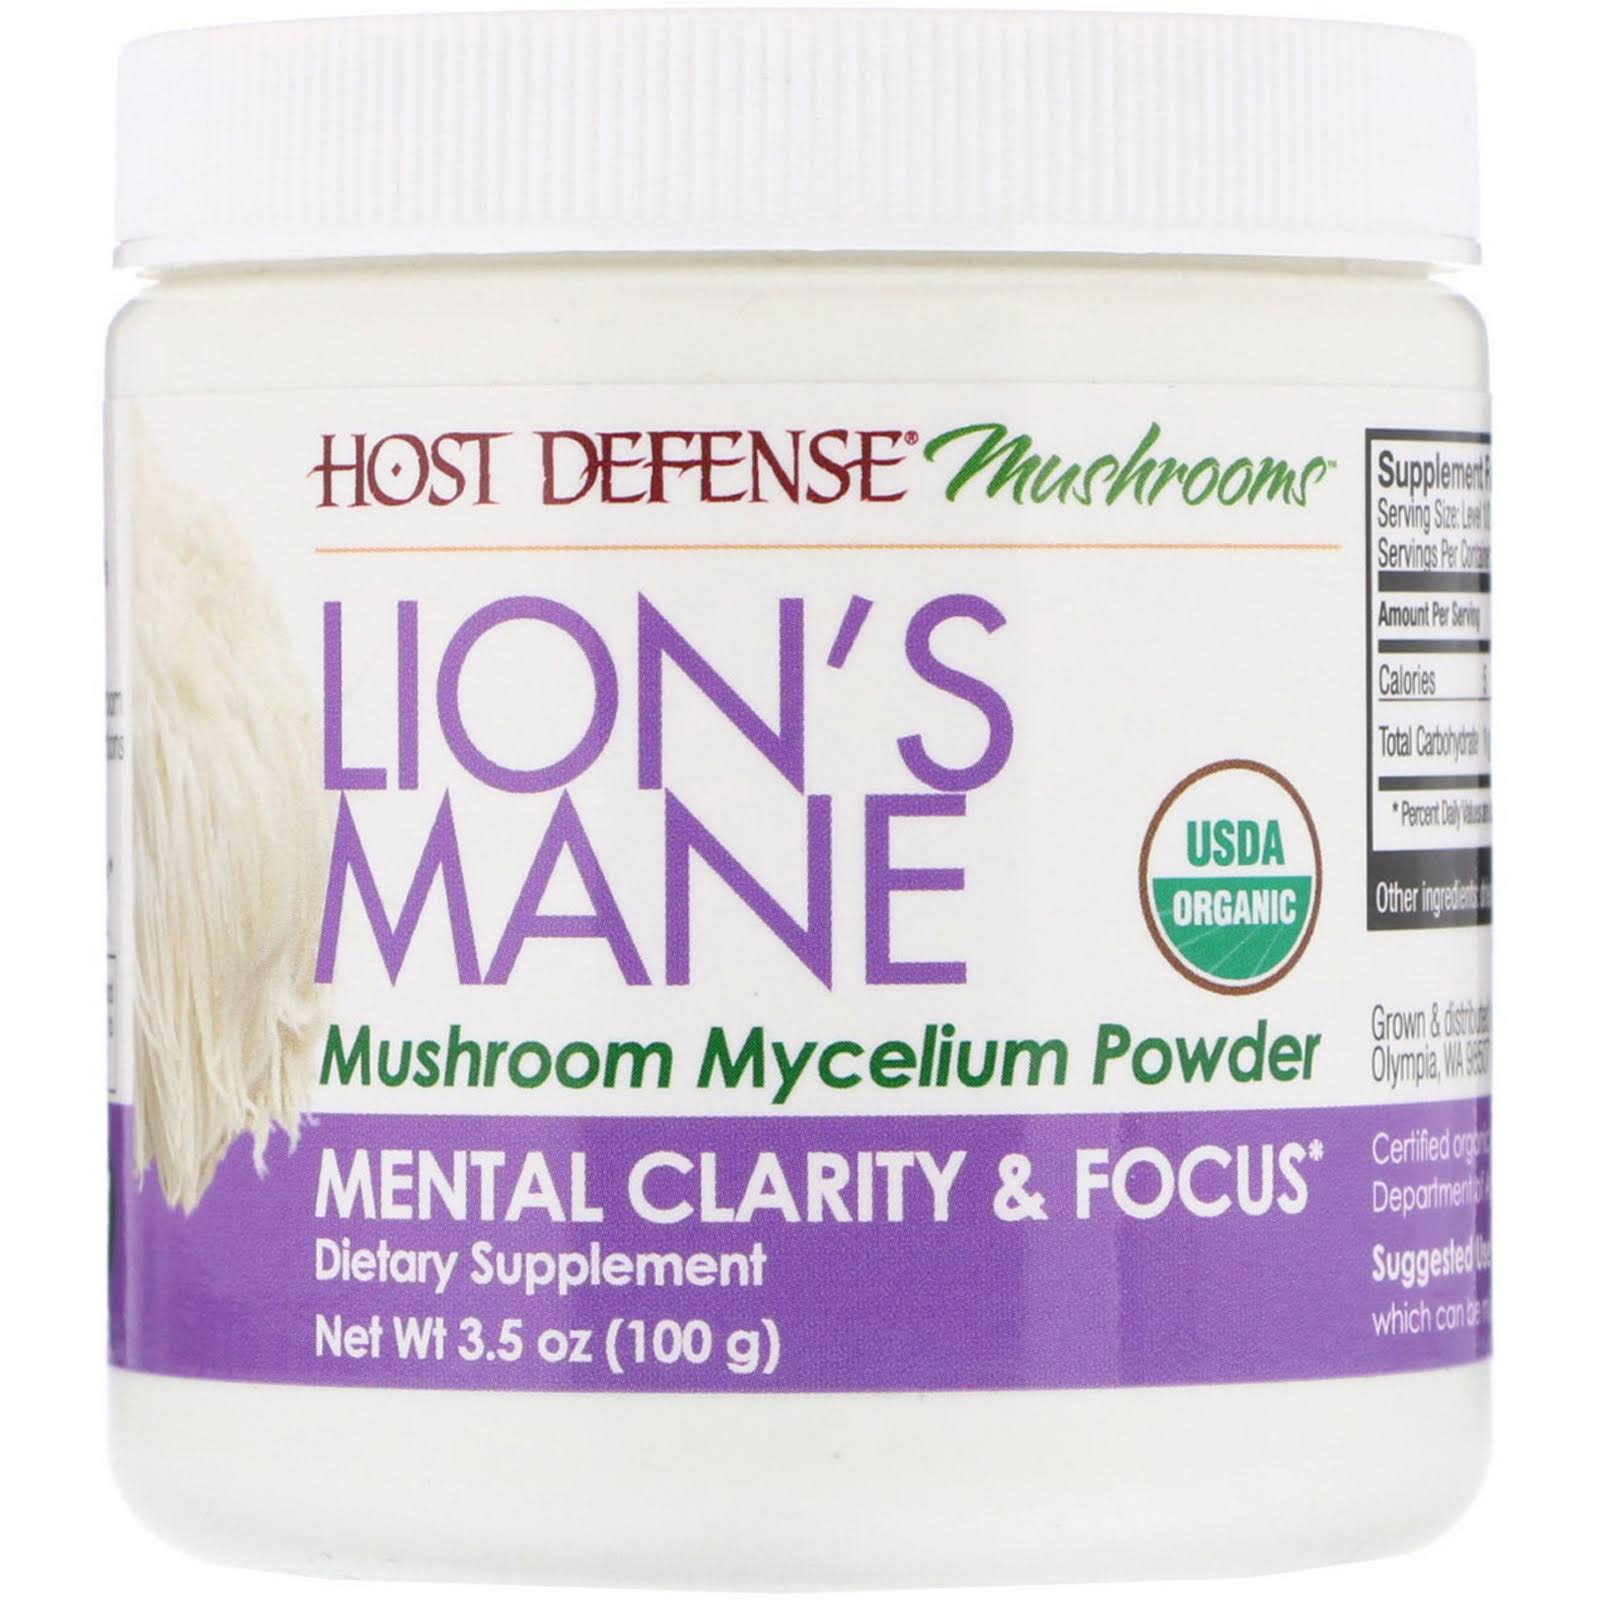 Host Defense Lion's Mane Mushroom Mycelium Powder 3.5oz